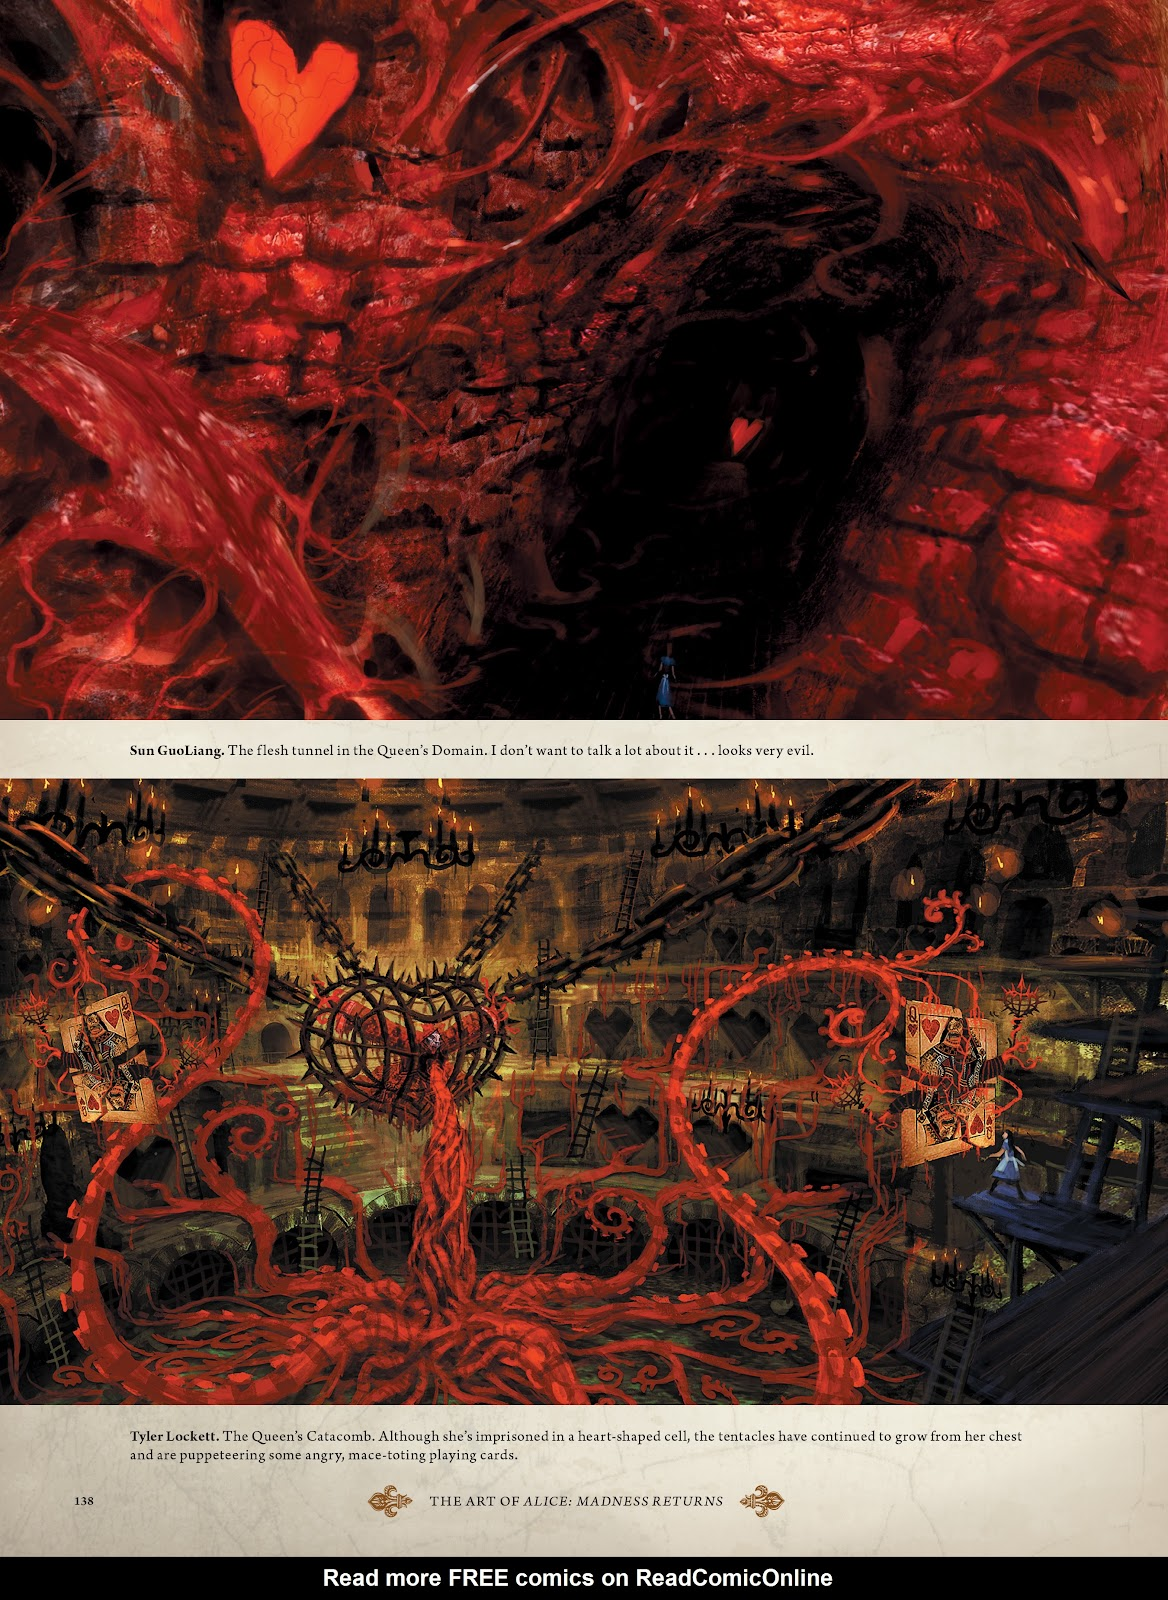 Read online The Art of Alice: Madness Returns comic -  Issue # TPB (Part 2) - 33